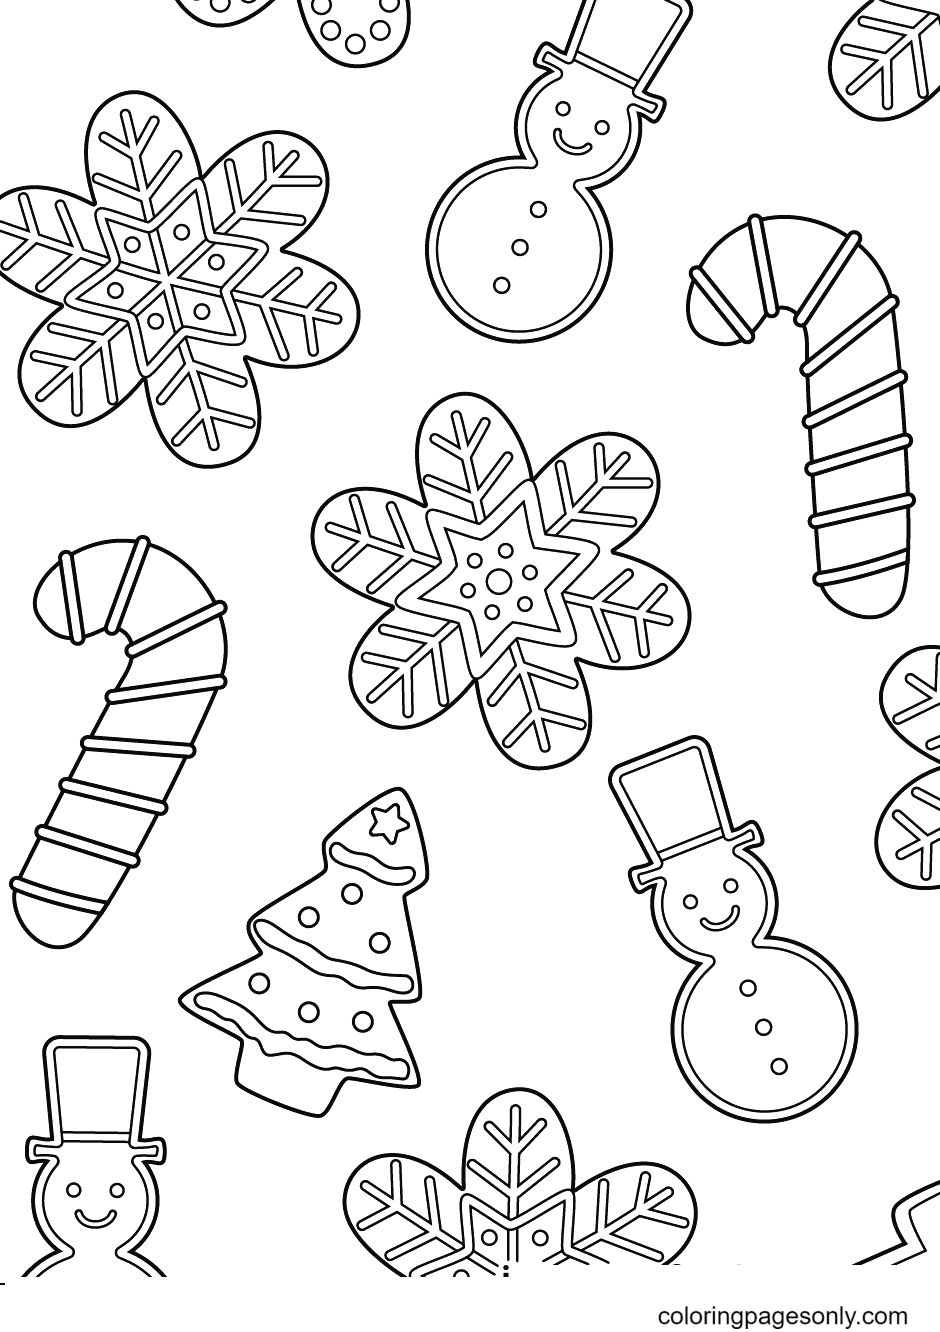 Gingerbread Snowmen with Candy Canes, Snowflakes and Trees Coloring Page